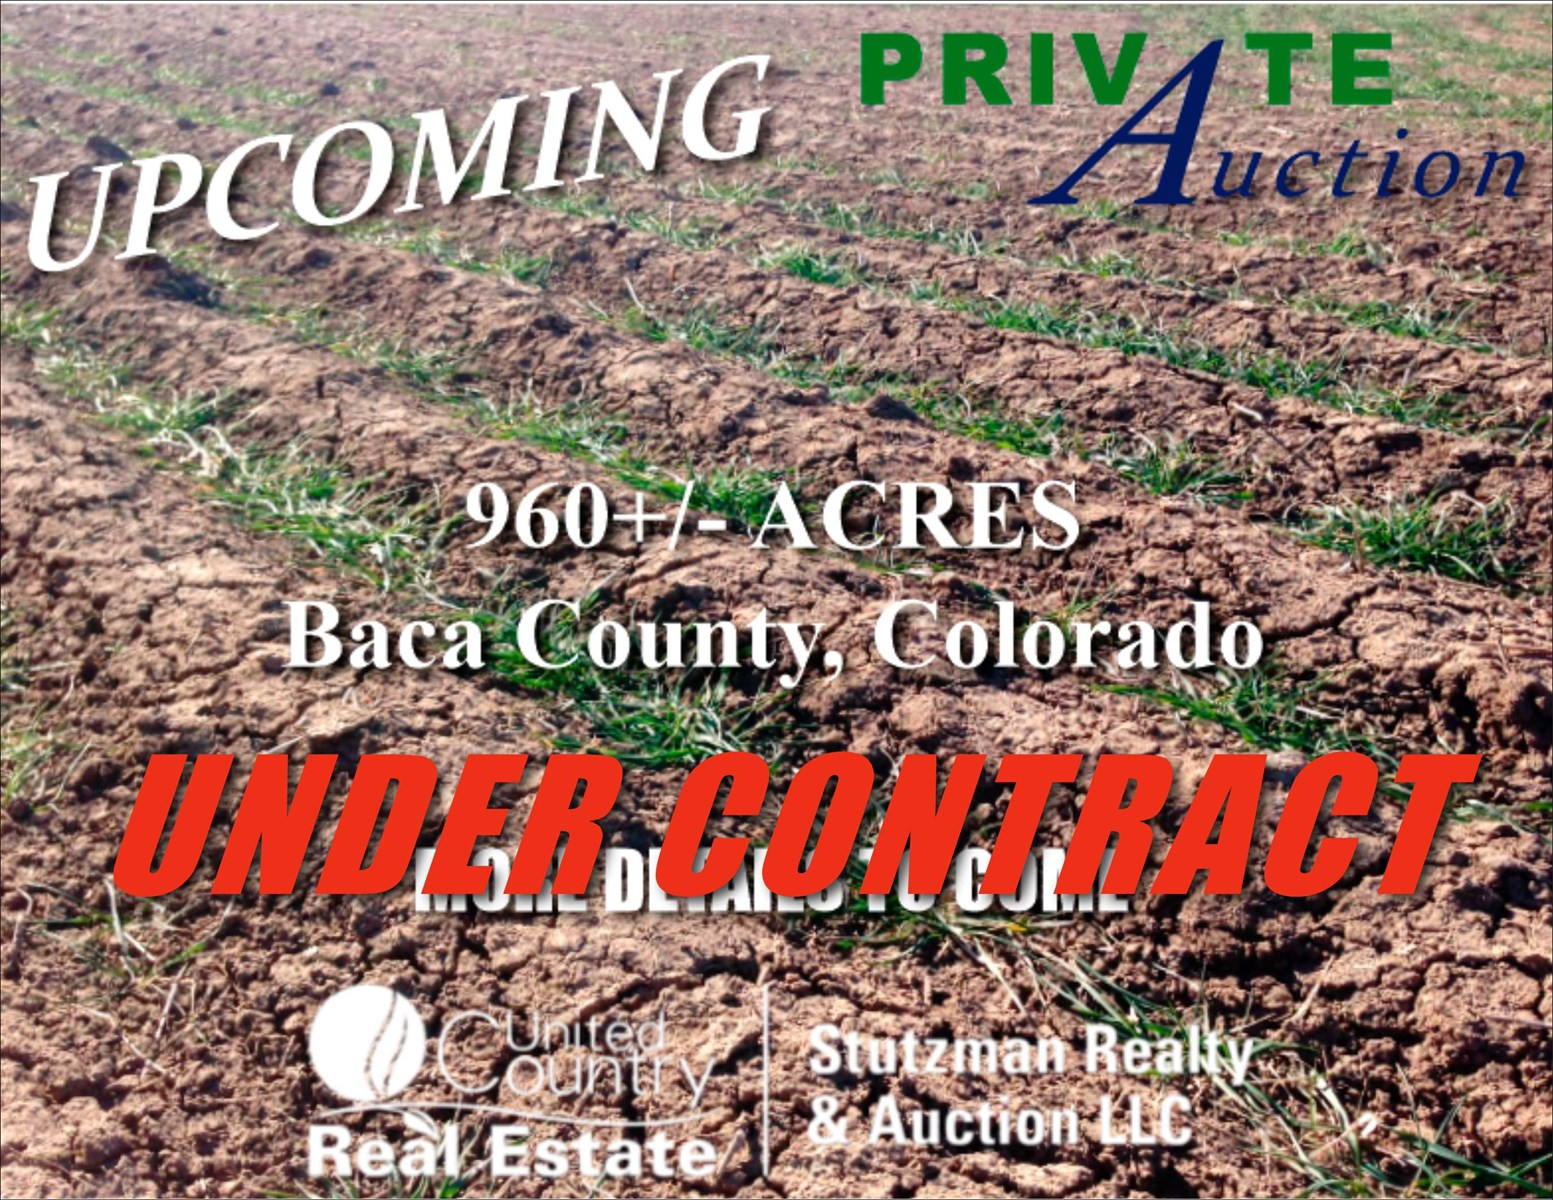 BACA COUNTY, COLORADO 960+/- ACRES DRYLAND FARM GROUND